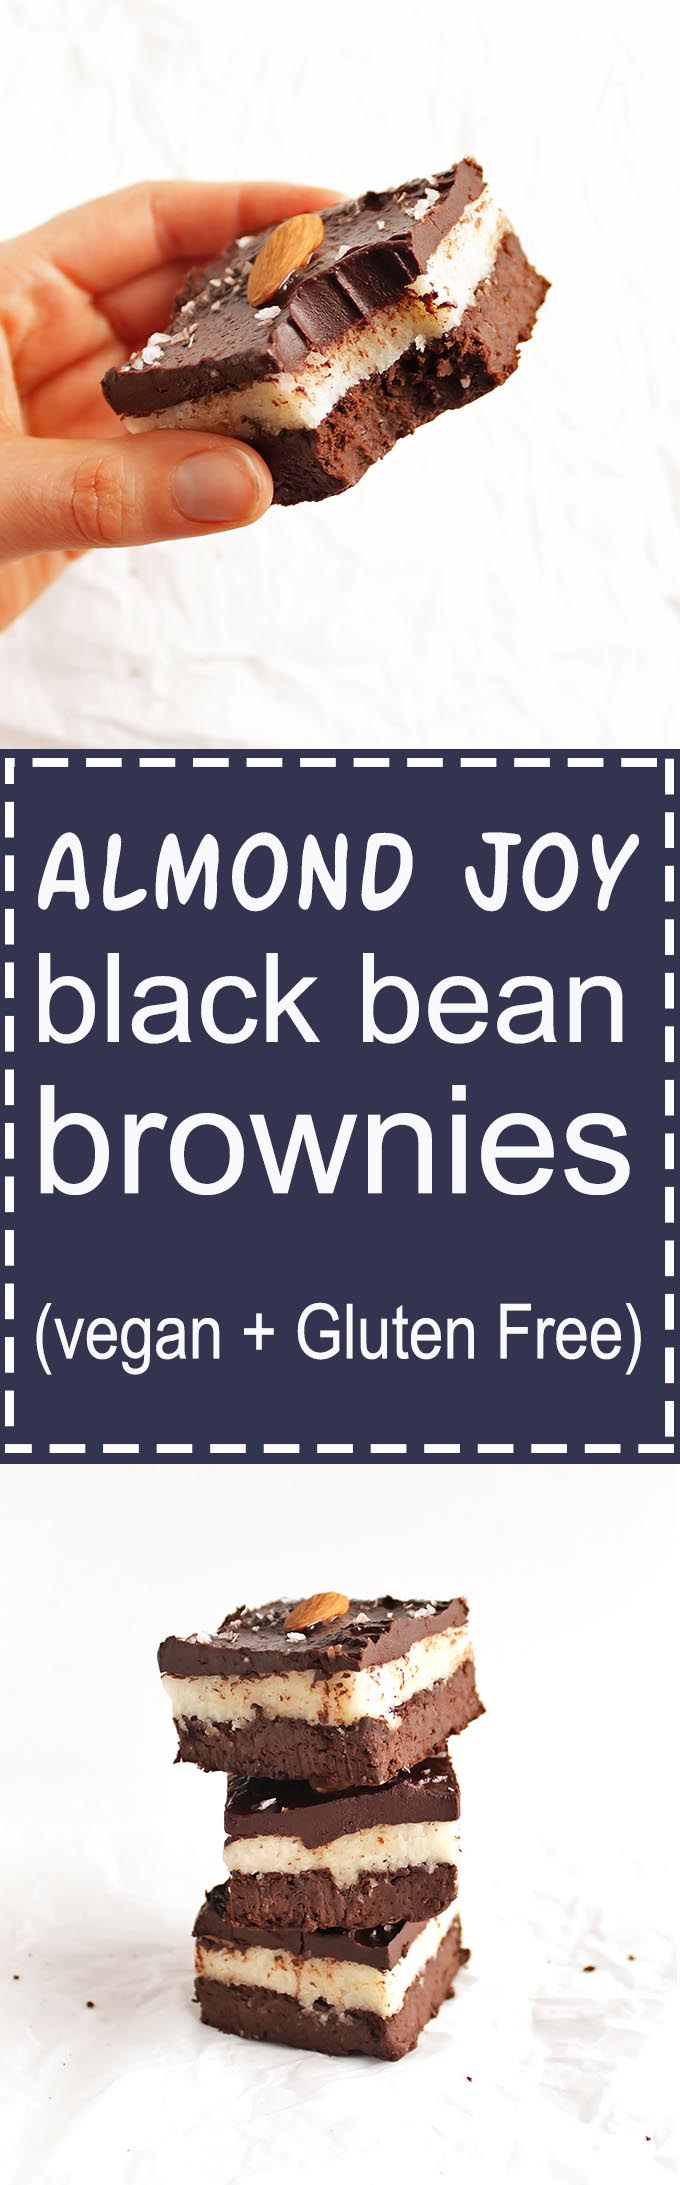 Almond Joy Black Bean Brownies - A fudge-y brownie layer topped with a sticky coconut layer, topped with a ganache layer and almonds. This recipe is amazingly delicious! It's rich, satisfying, and surprisingly healthy - healthy fats and fiber! Gluten Free/Vegan/Refined Sugar Free | robustrecipes.com